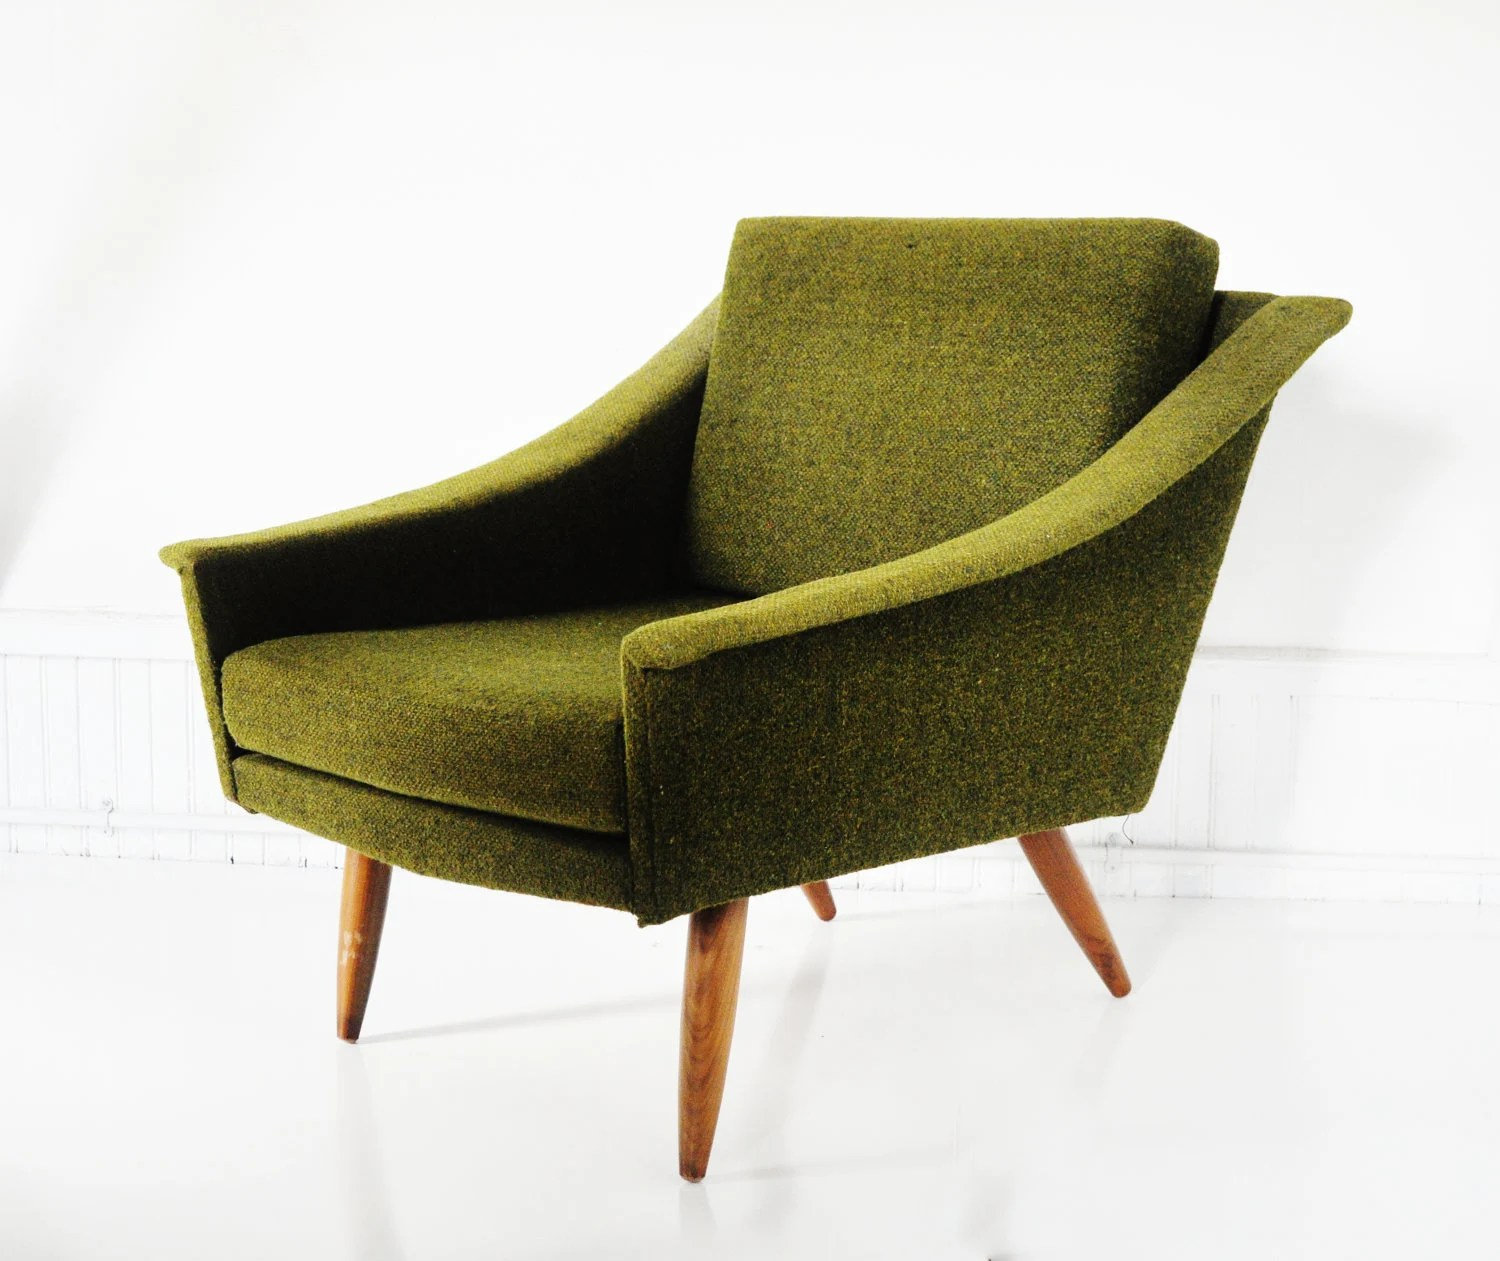 Midcentury Chairs Mid Century Lounge Chair Adrian Pearsall For Craft